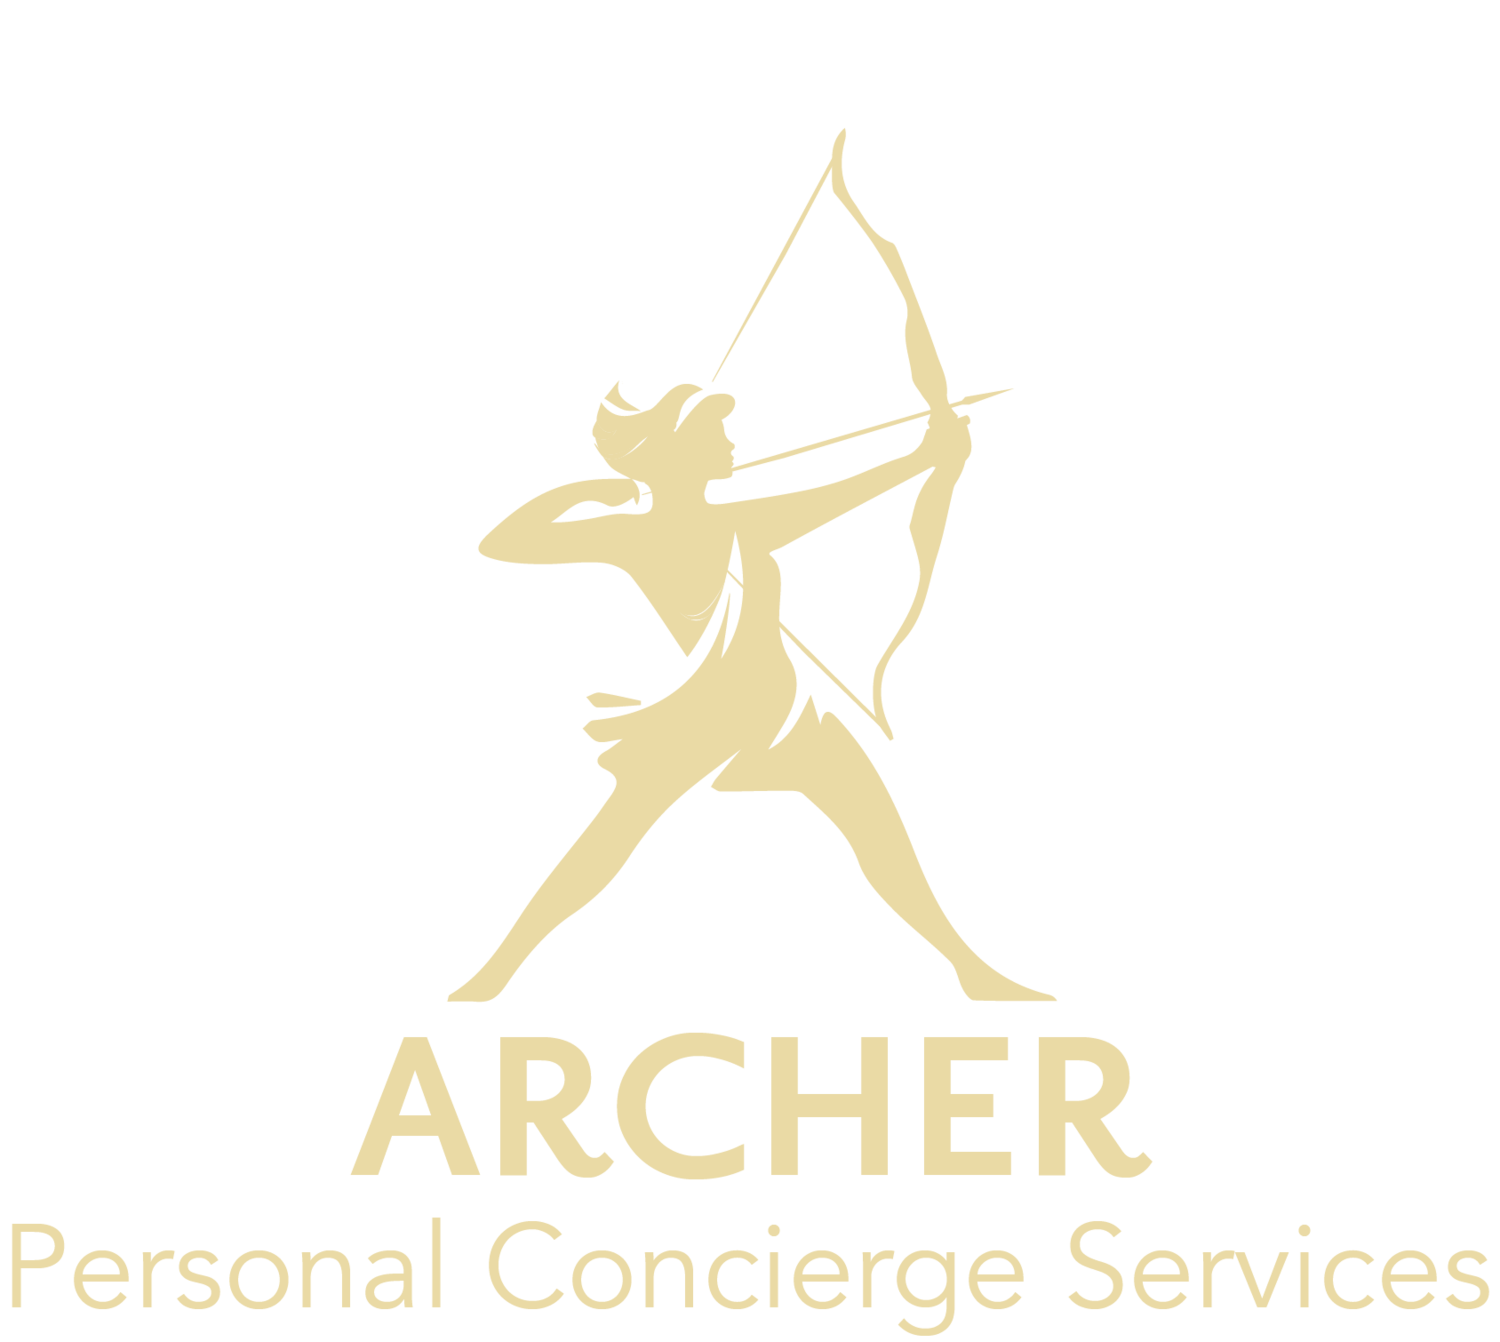 ARCHER PERSONAL CONCIERGE SERVICES